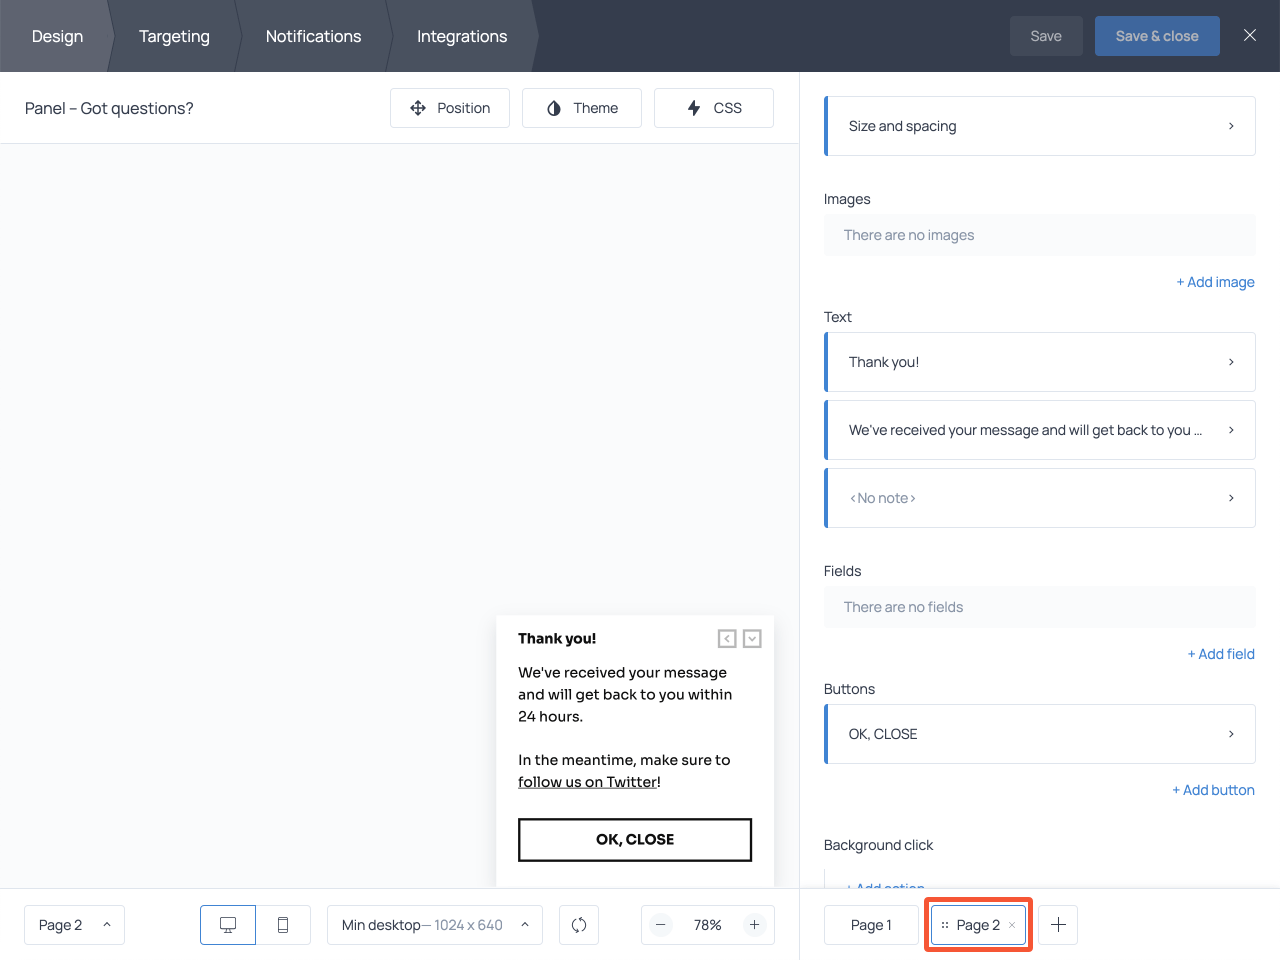 How to add a second page to the form to display a submission success message